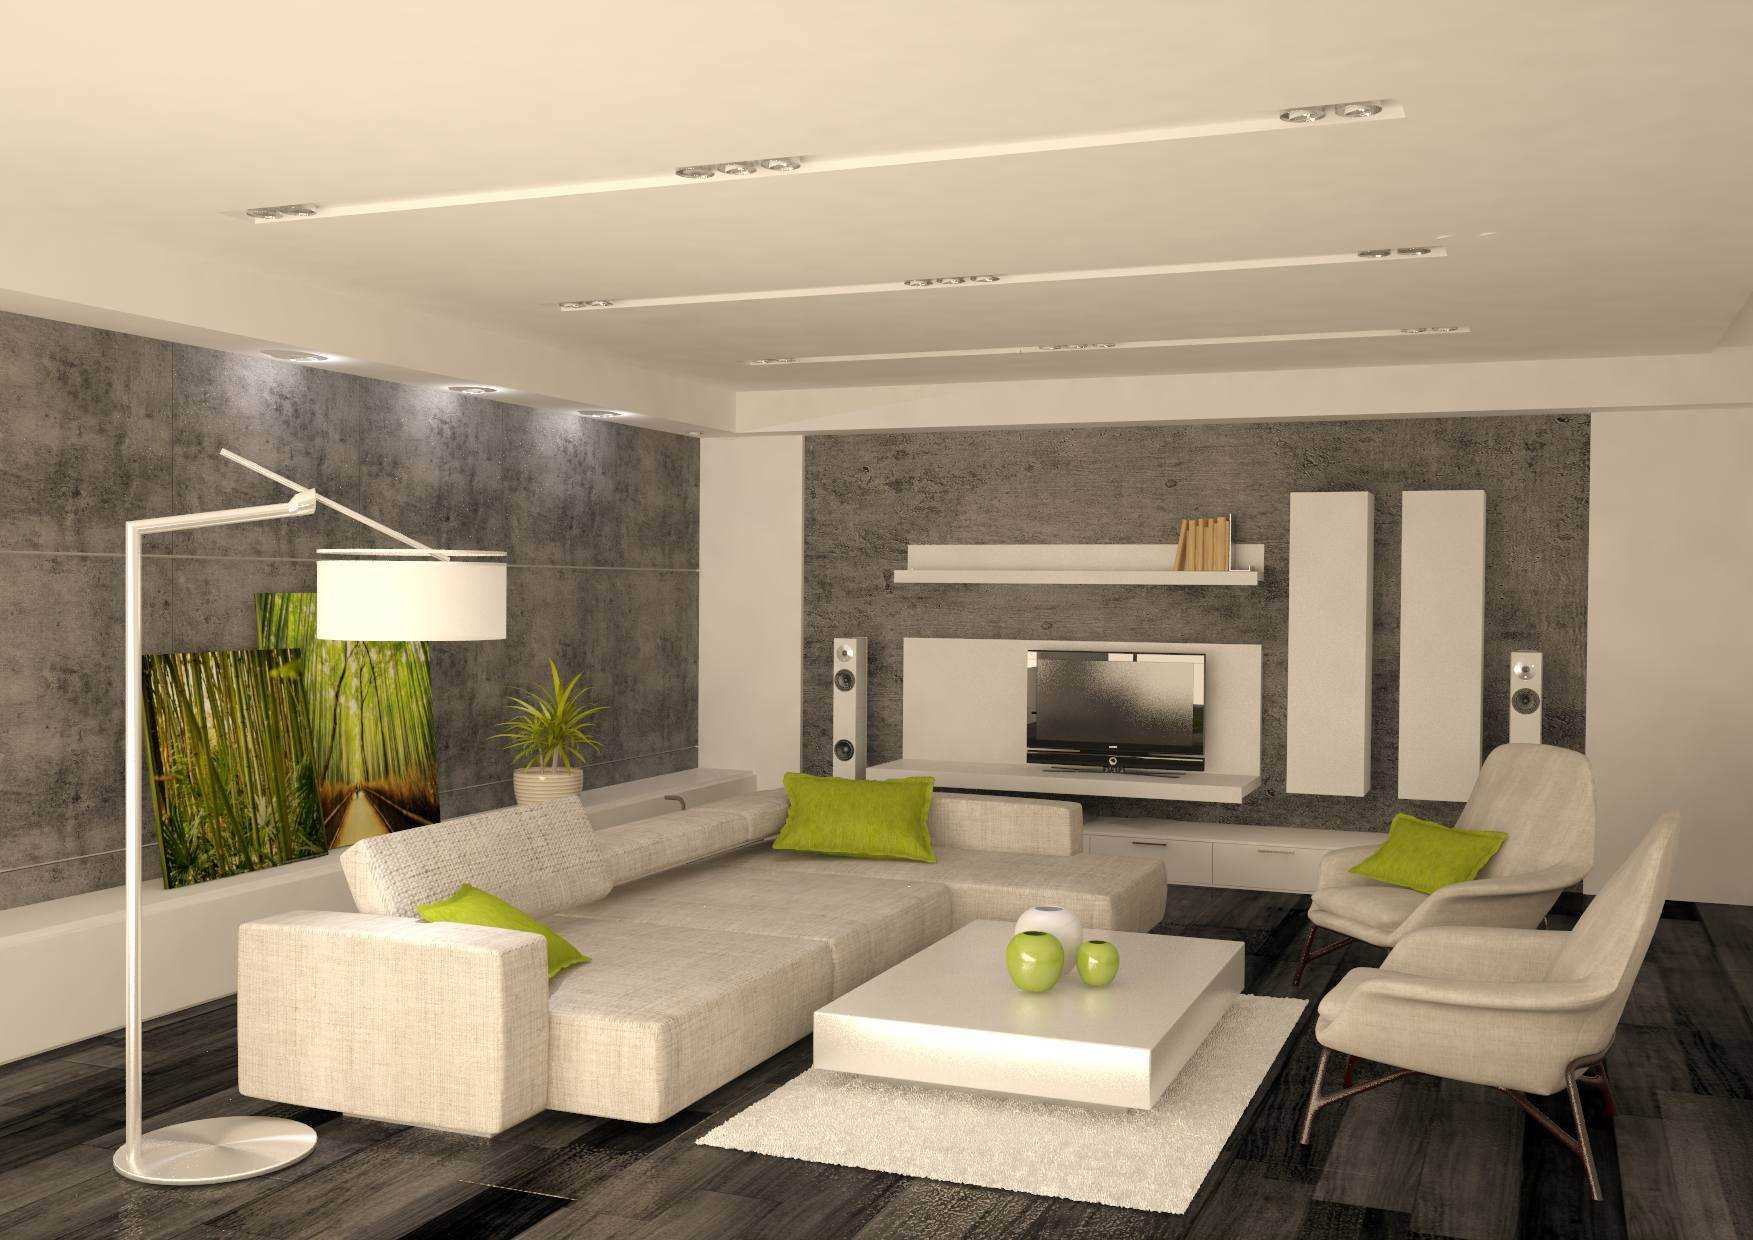 Boxed living room design with leather furniture and walllpaper on the walls